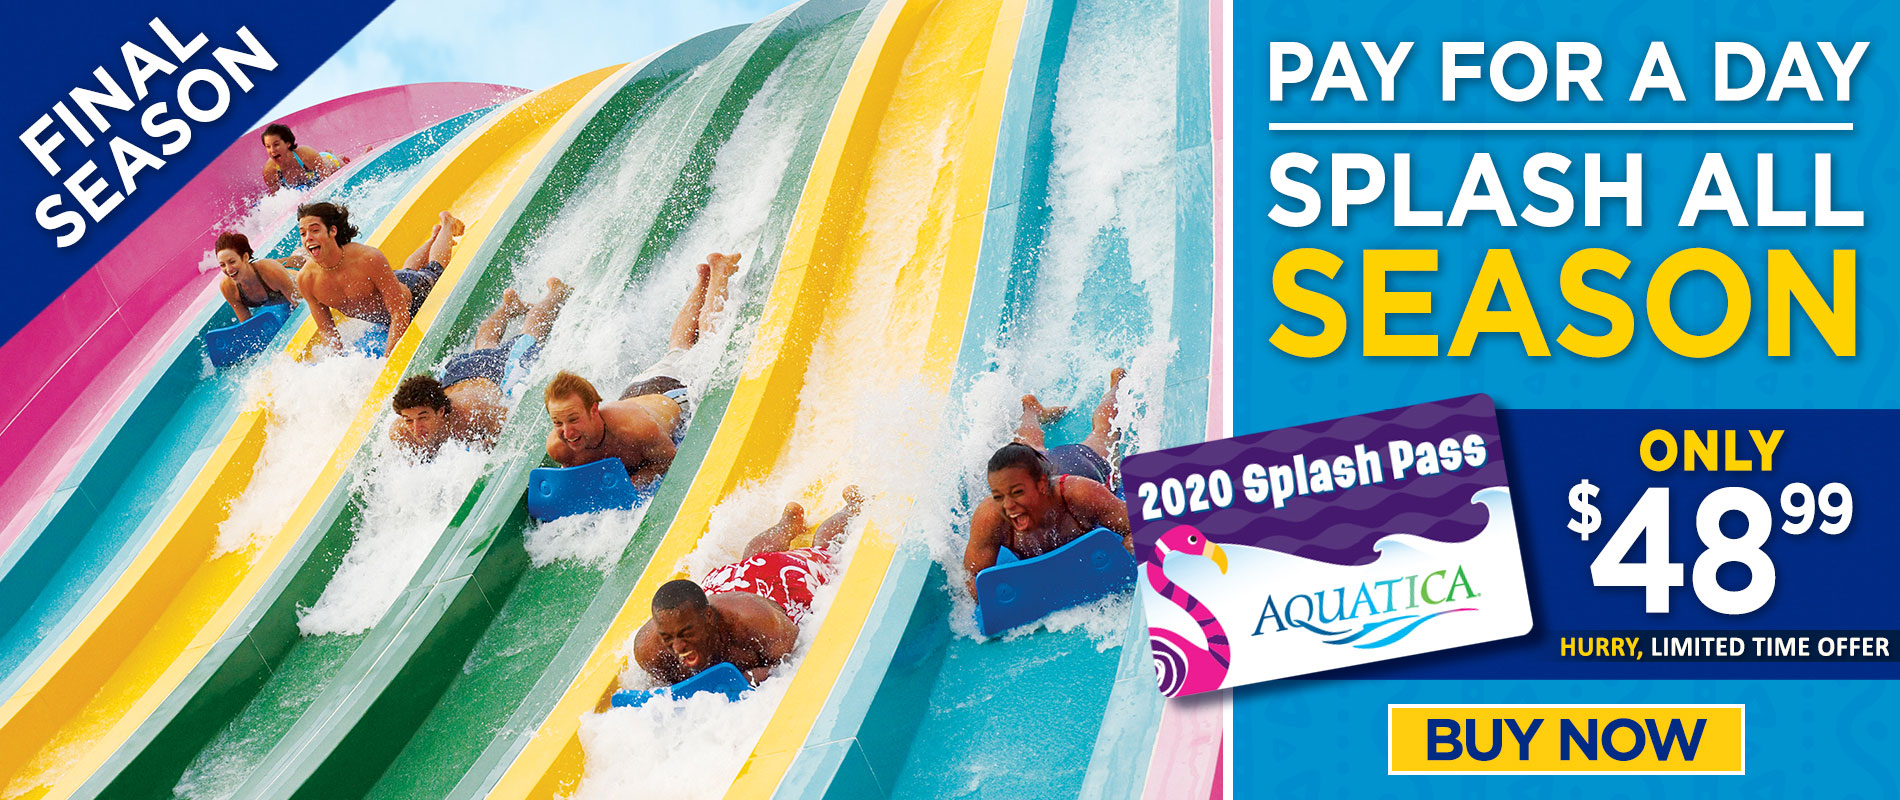 2020 Splash Pass